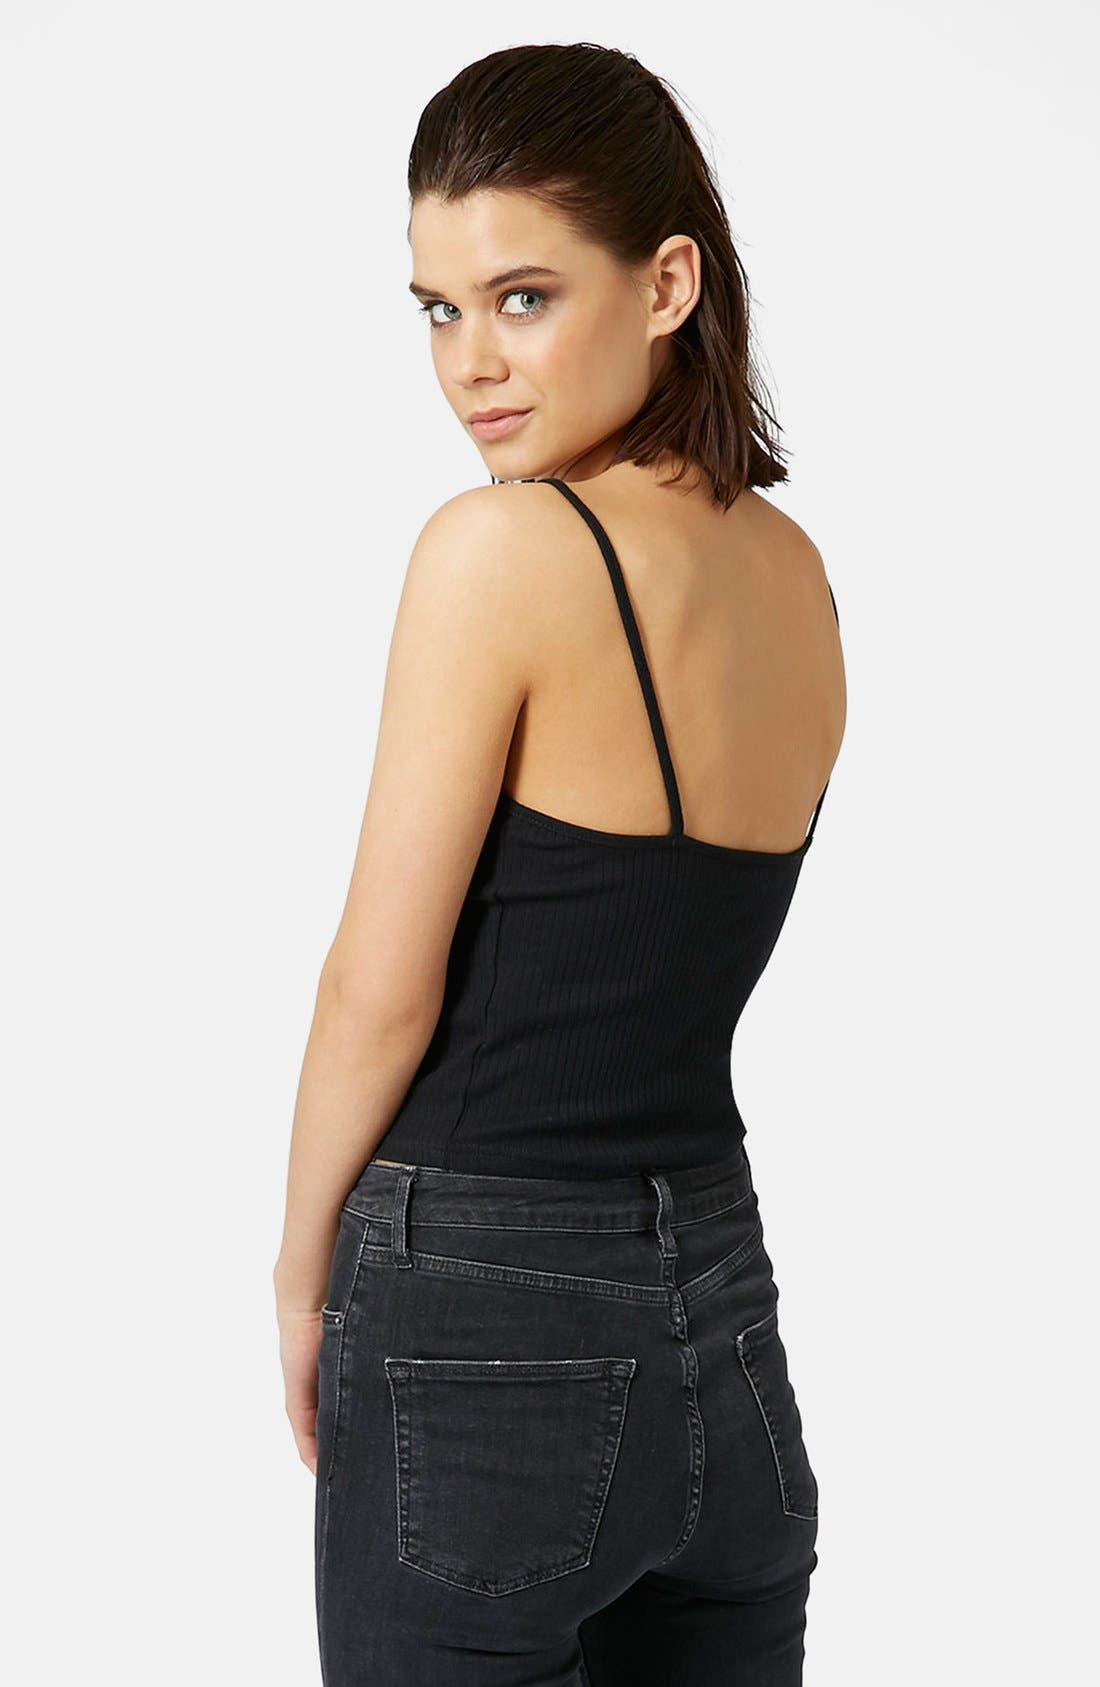 TOPSHOP, Ribbed Crop Camisole, Alternate thumbnail 3, color, 001